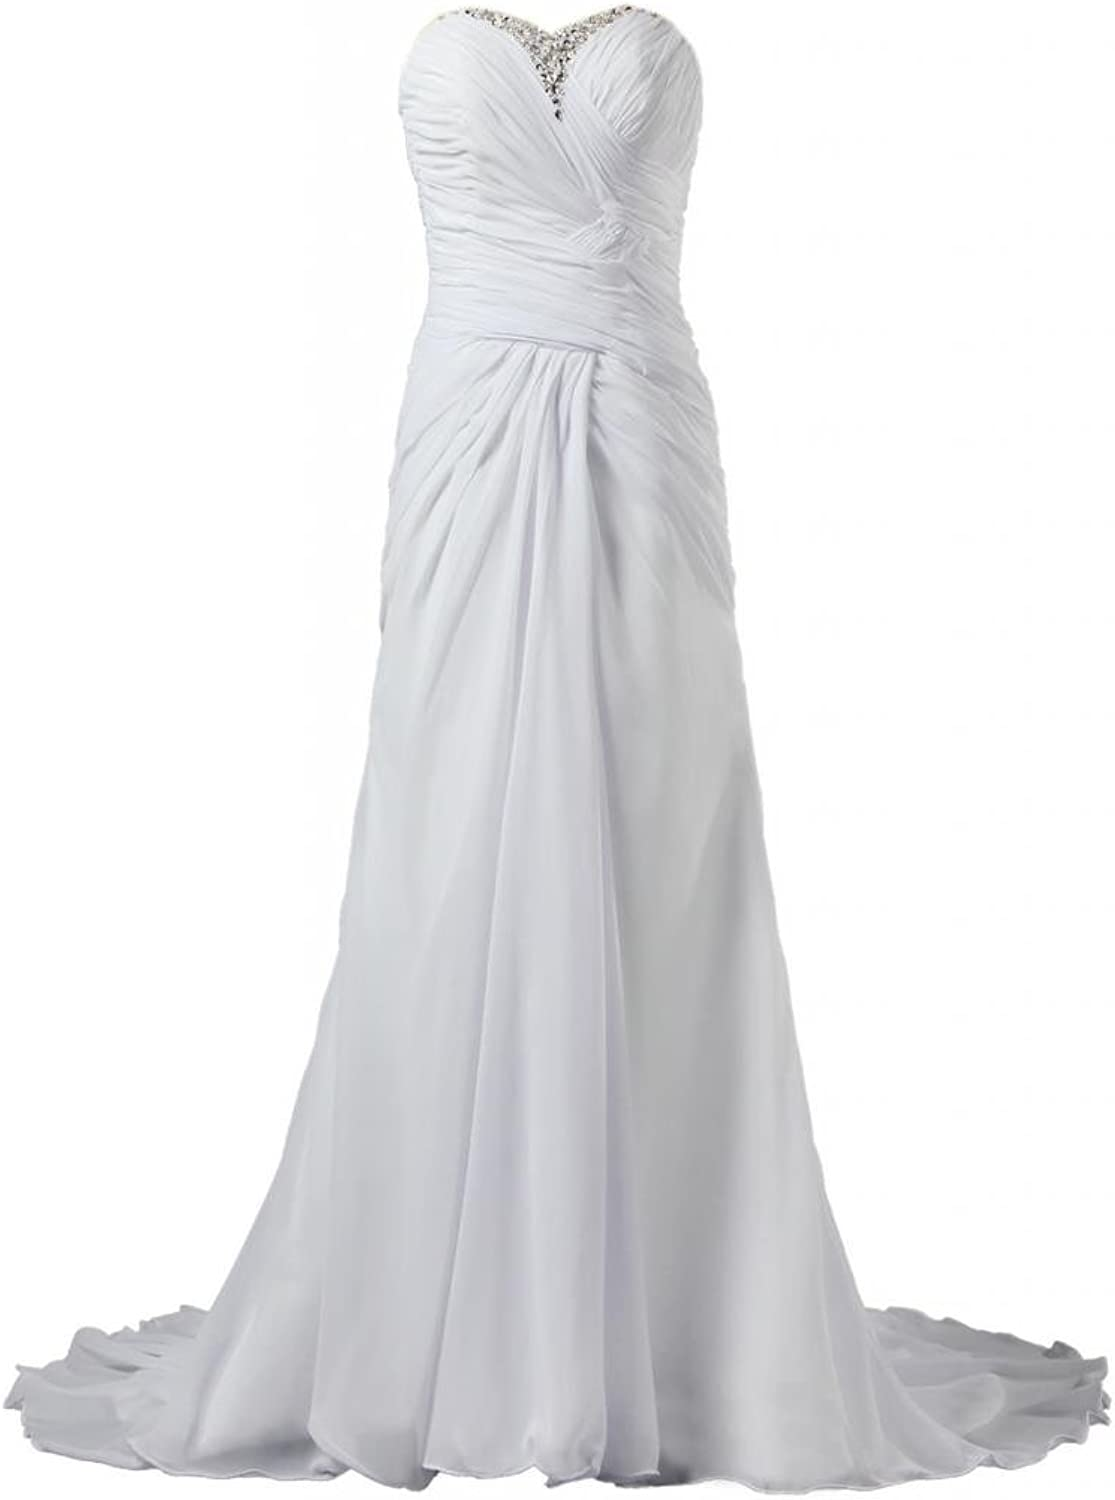 ANTS Simple Long Beach Wedding Dresses Gown for Women